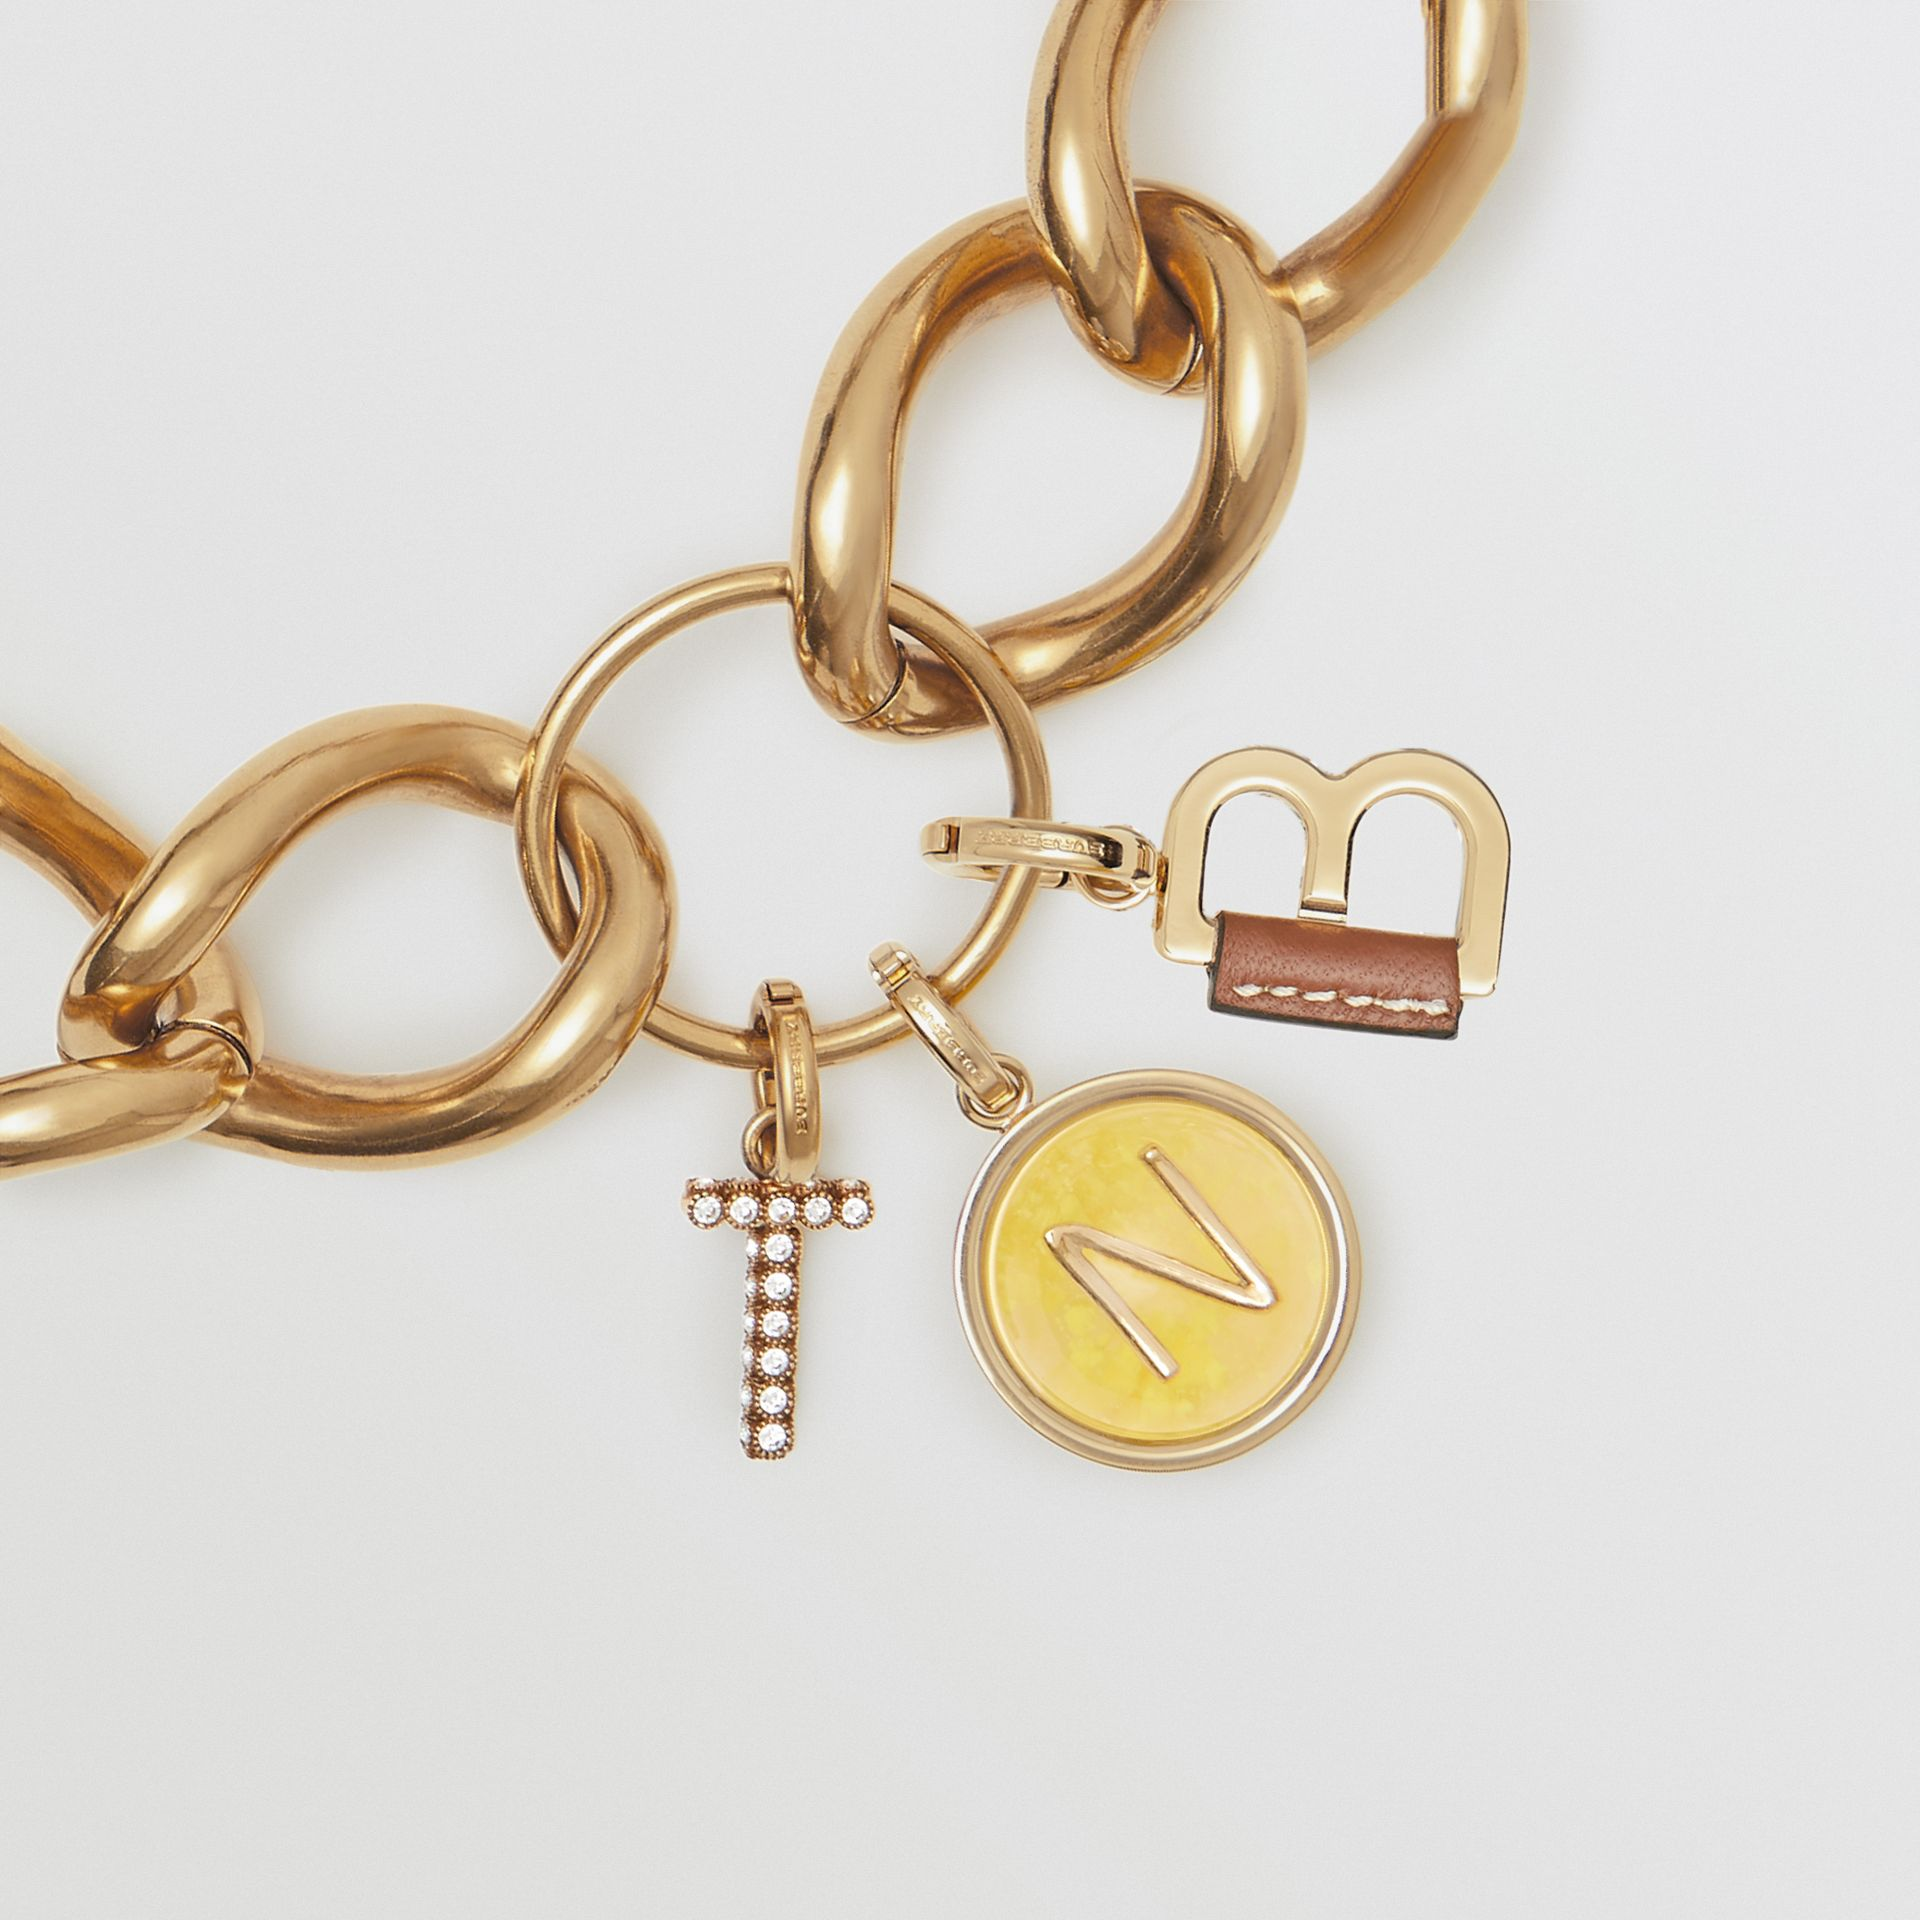 Marbled Resin 'I' Alphabet Charm in Gold/mimosa - Women | Burberry Australia - gallery image 2